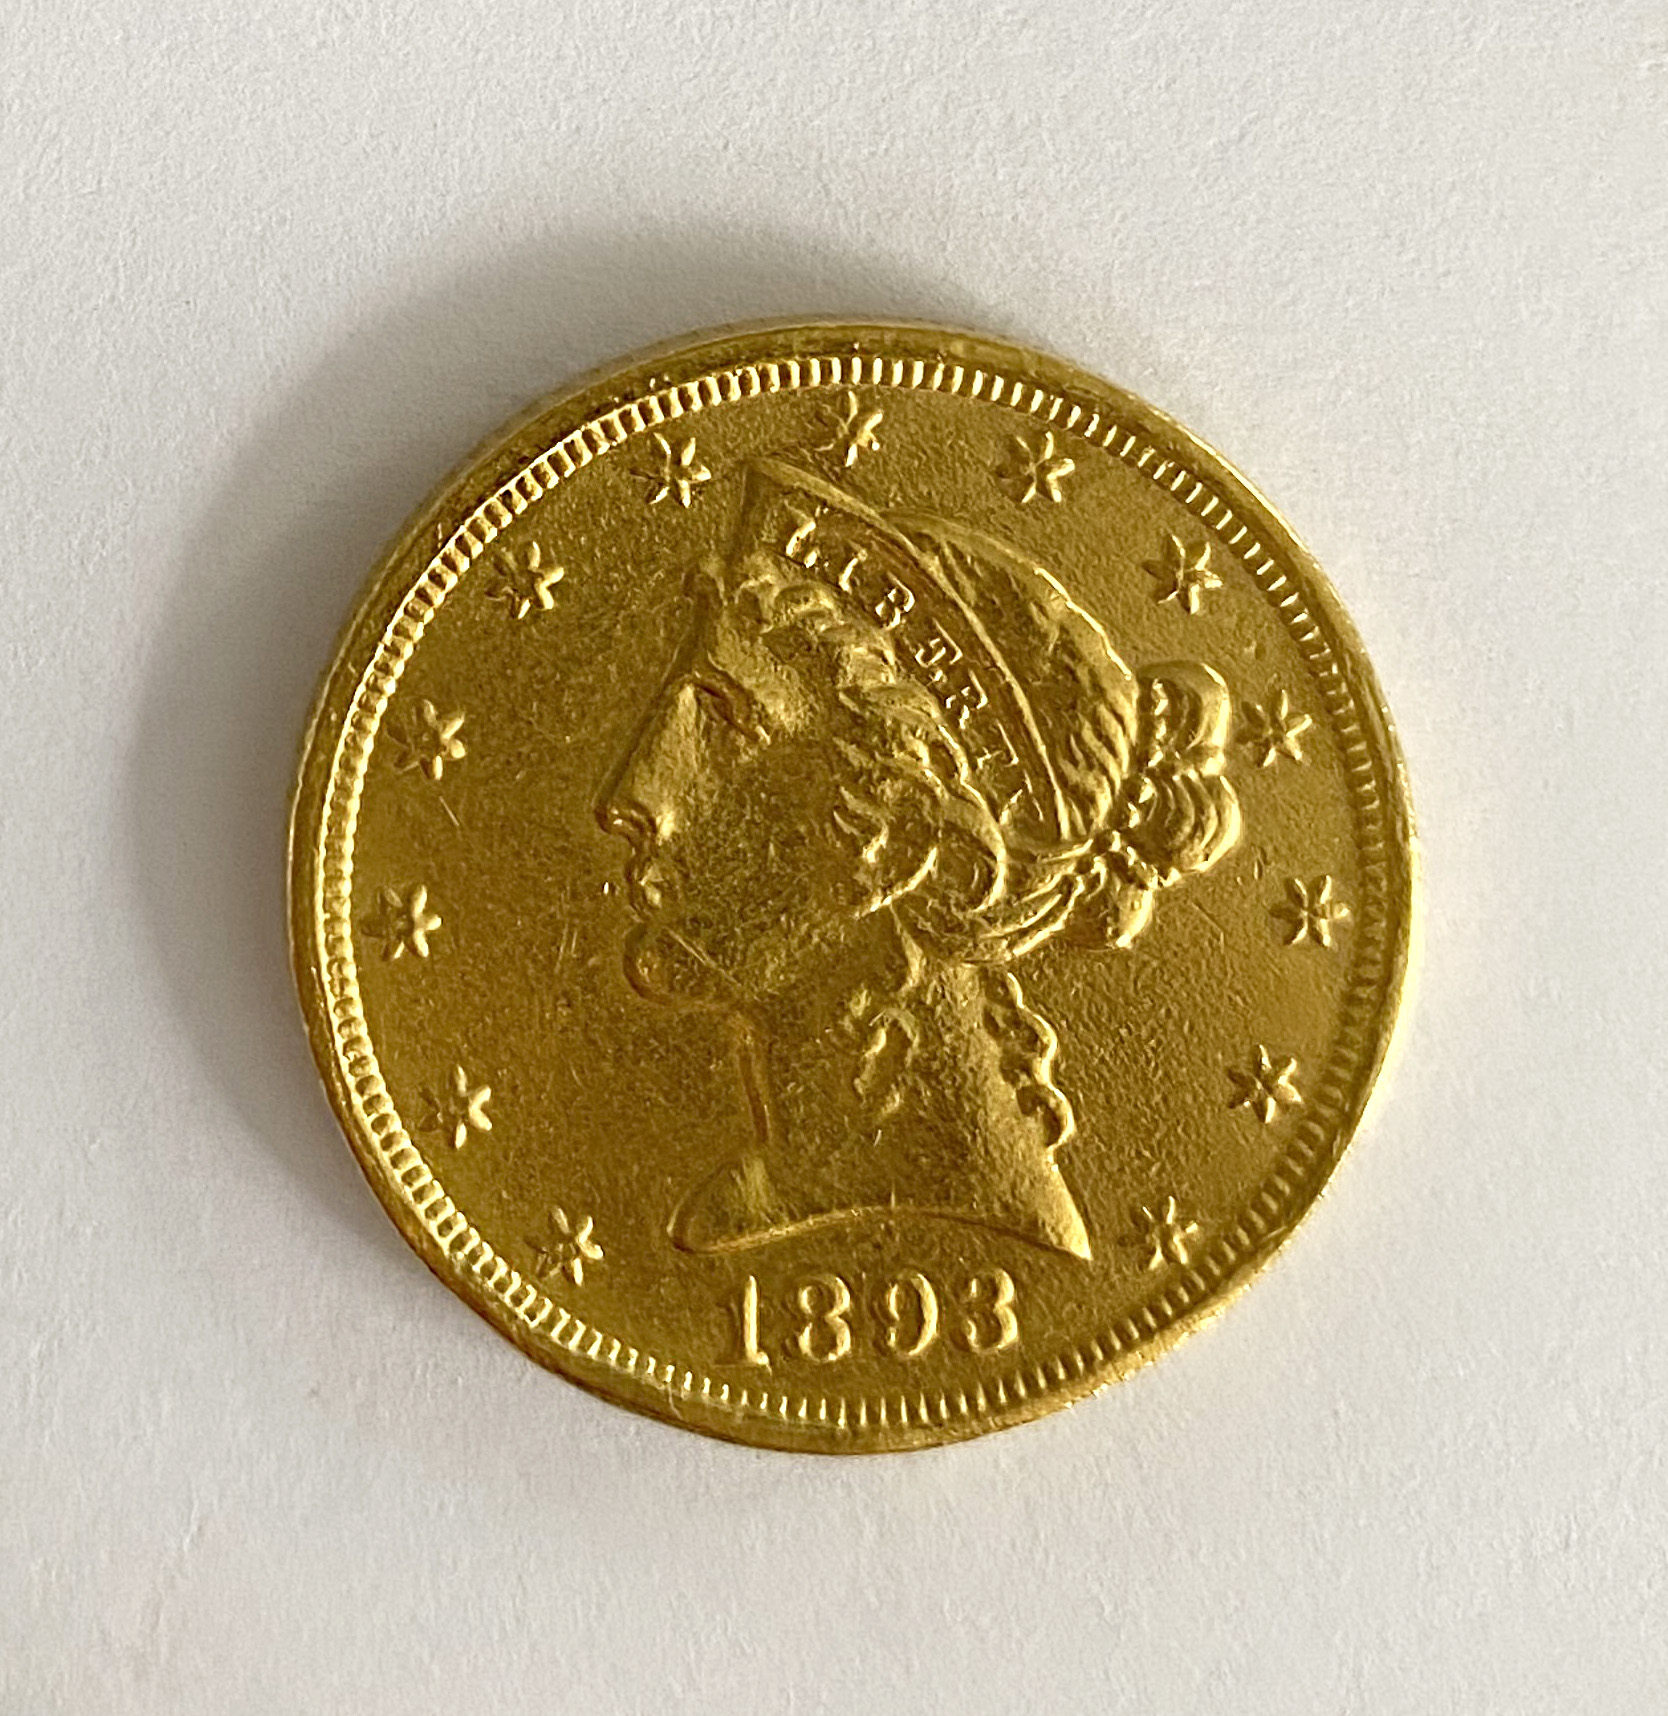 A United States of America $5 coin,